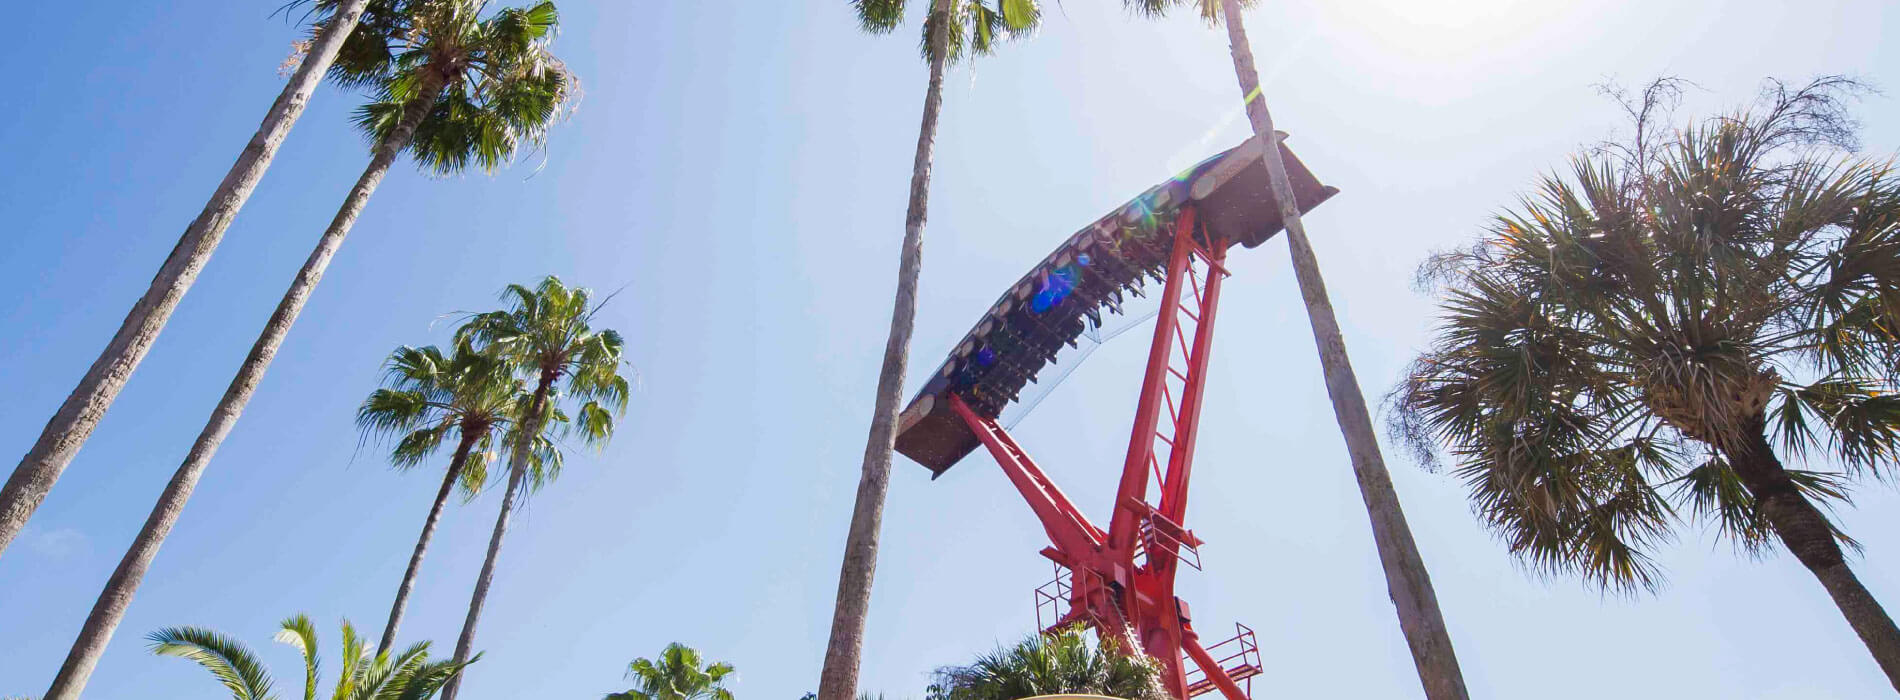 Ride the Phoenix at Busch Gardens Tampa Bay